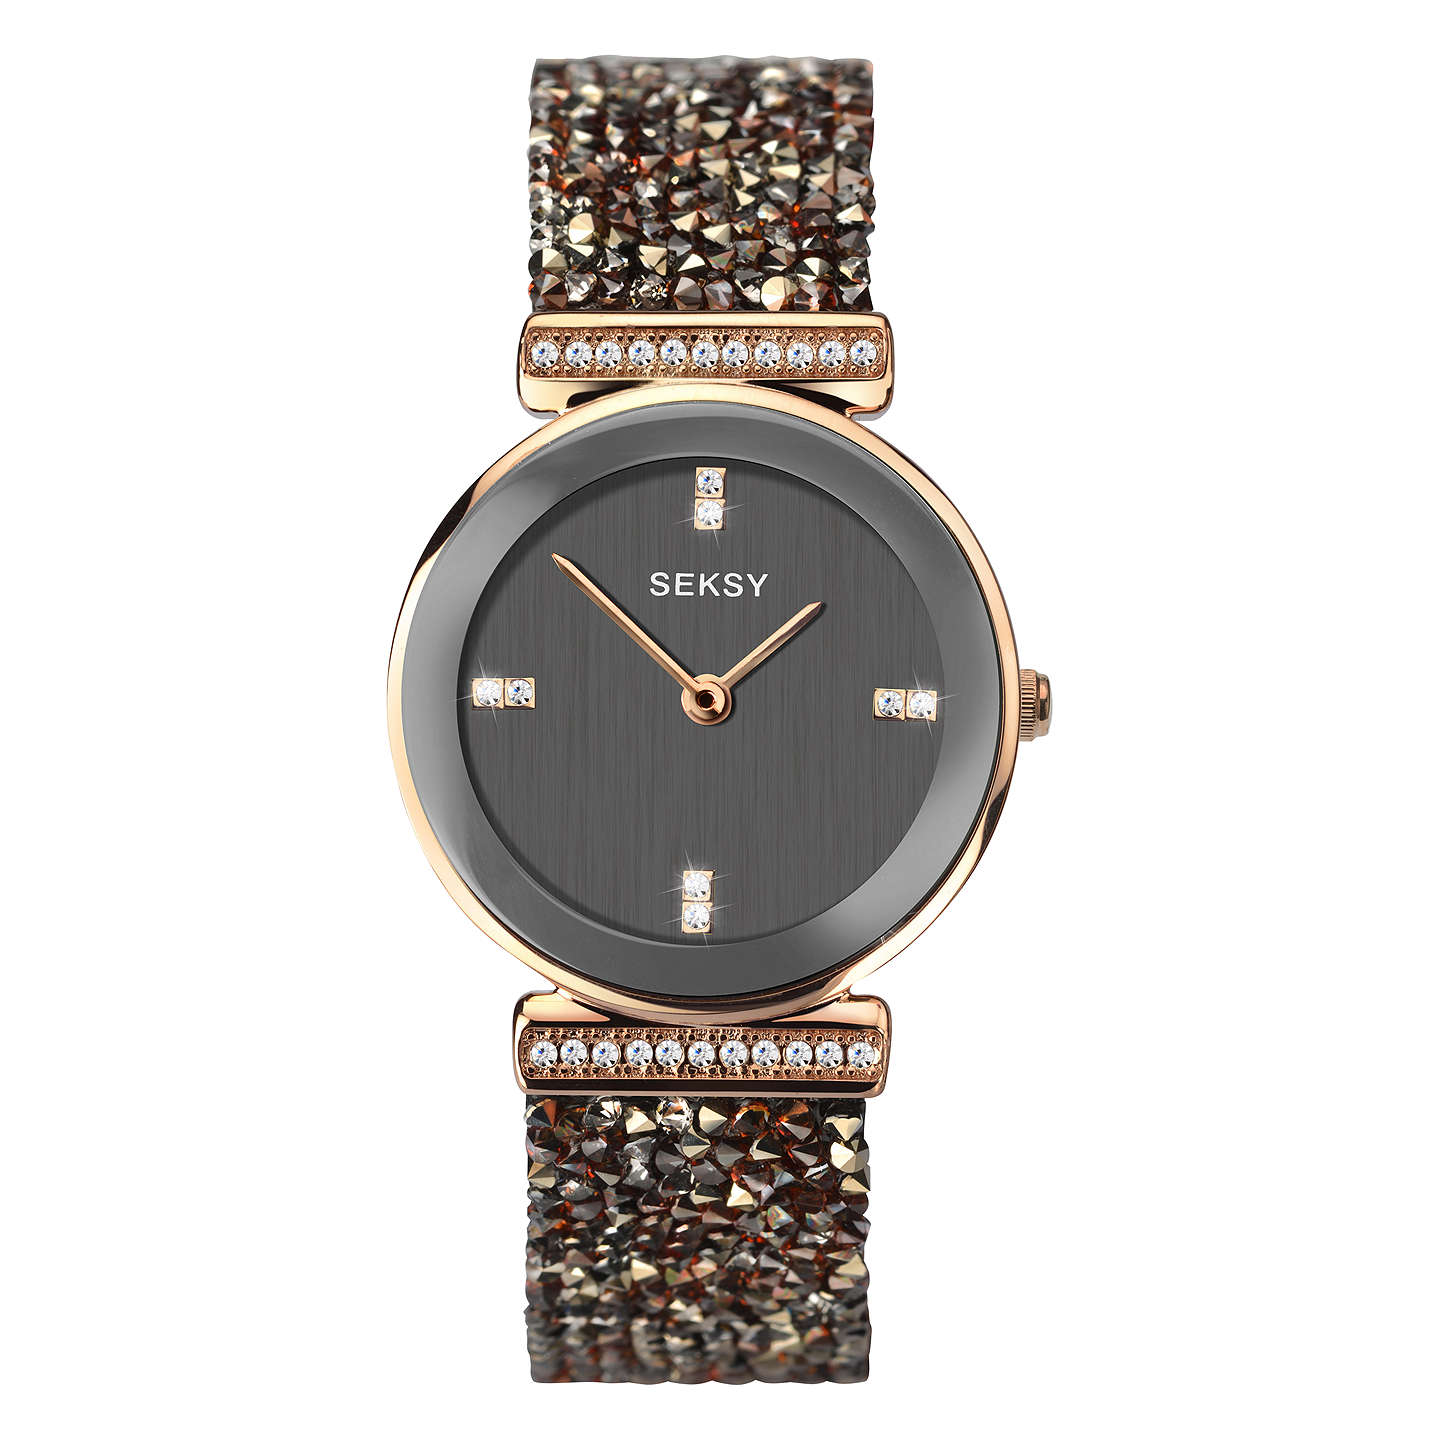 BuySekonda Women's Seksy Swarovski and Rock Crystal Round Bracelet Strap Watch, Grey 2656.37 Online at johnlewis.com